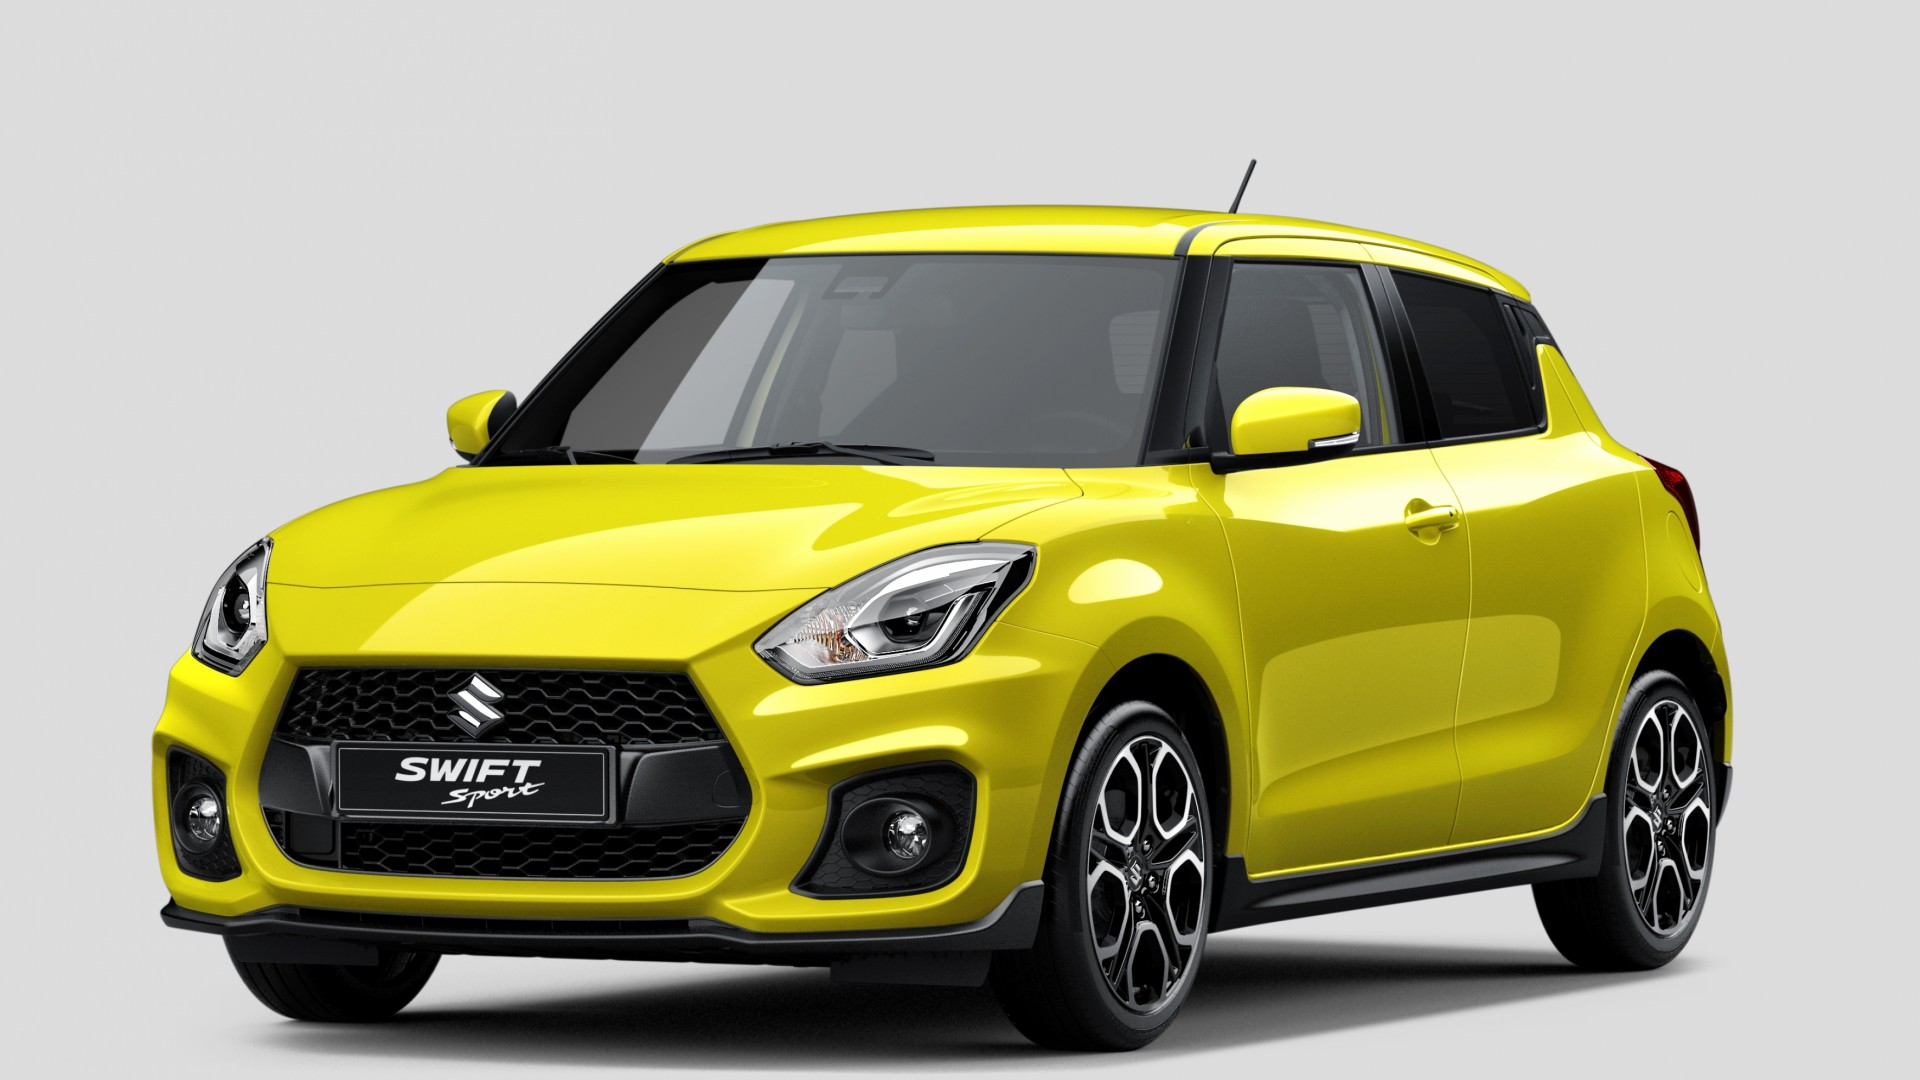 wallpaper suzuki swift sport 2018 cars 4k cars bikes. Black Bedroom Furniture Sets. Home Design Ideas